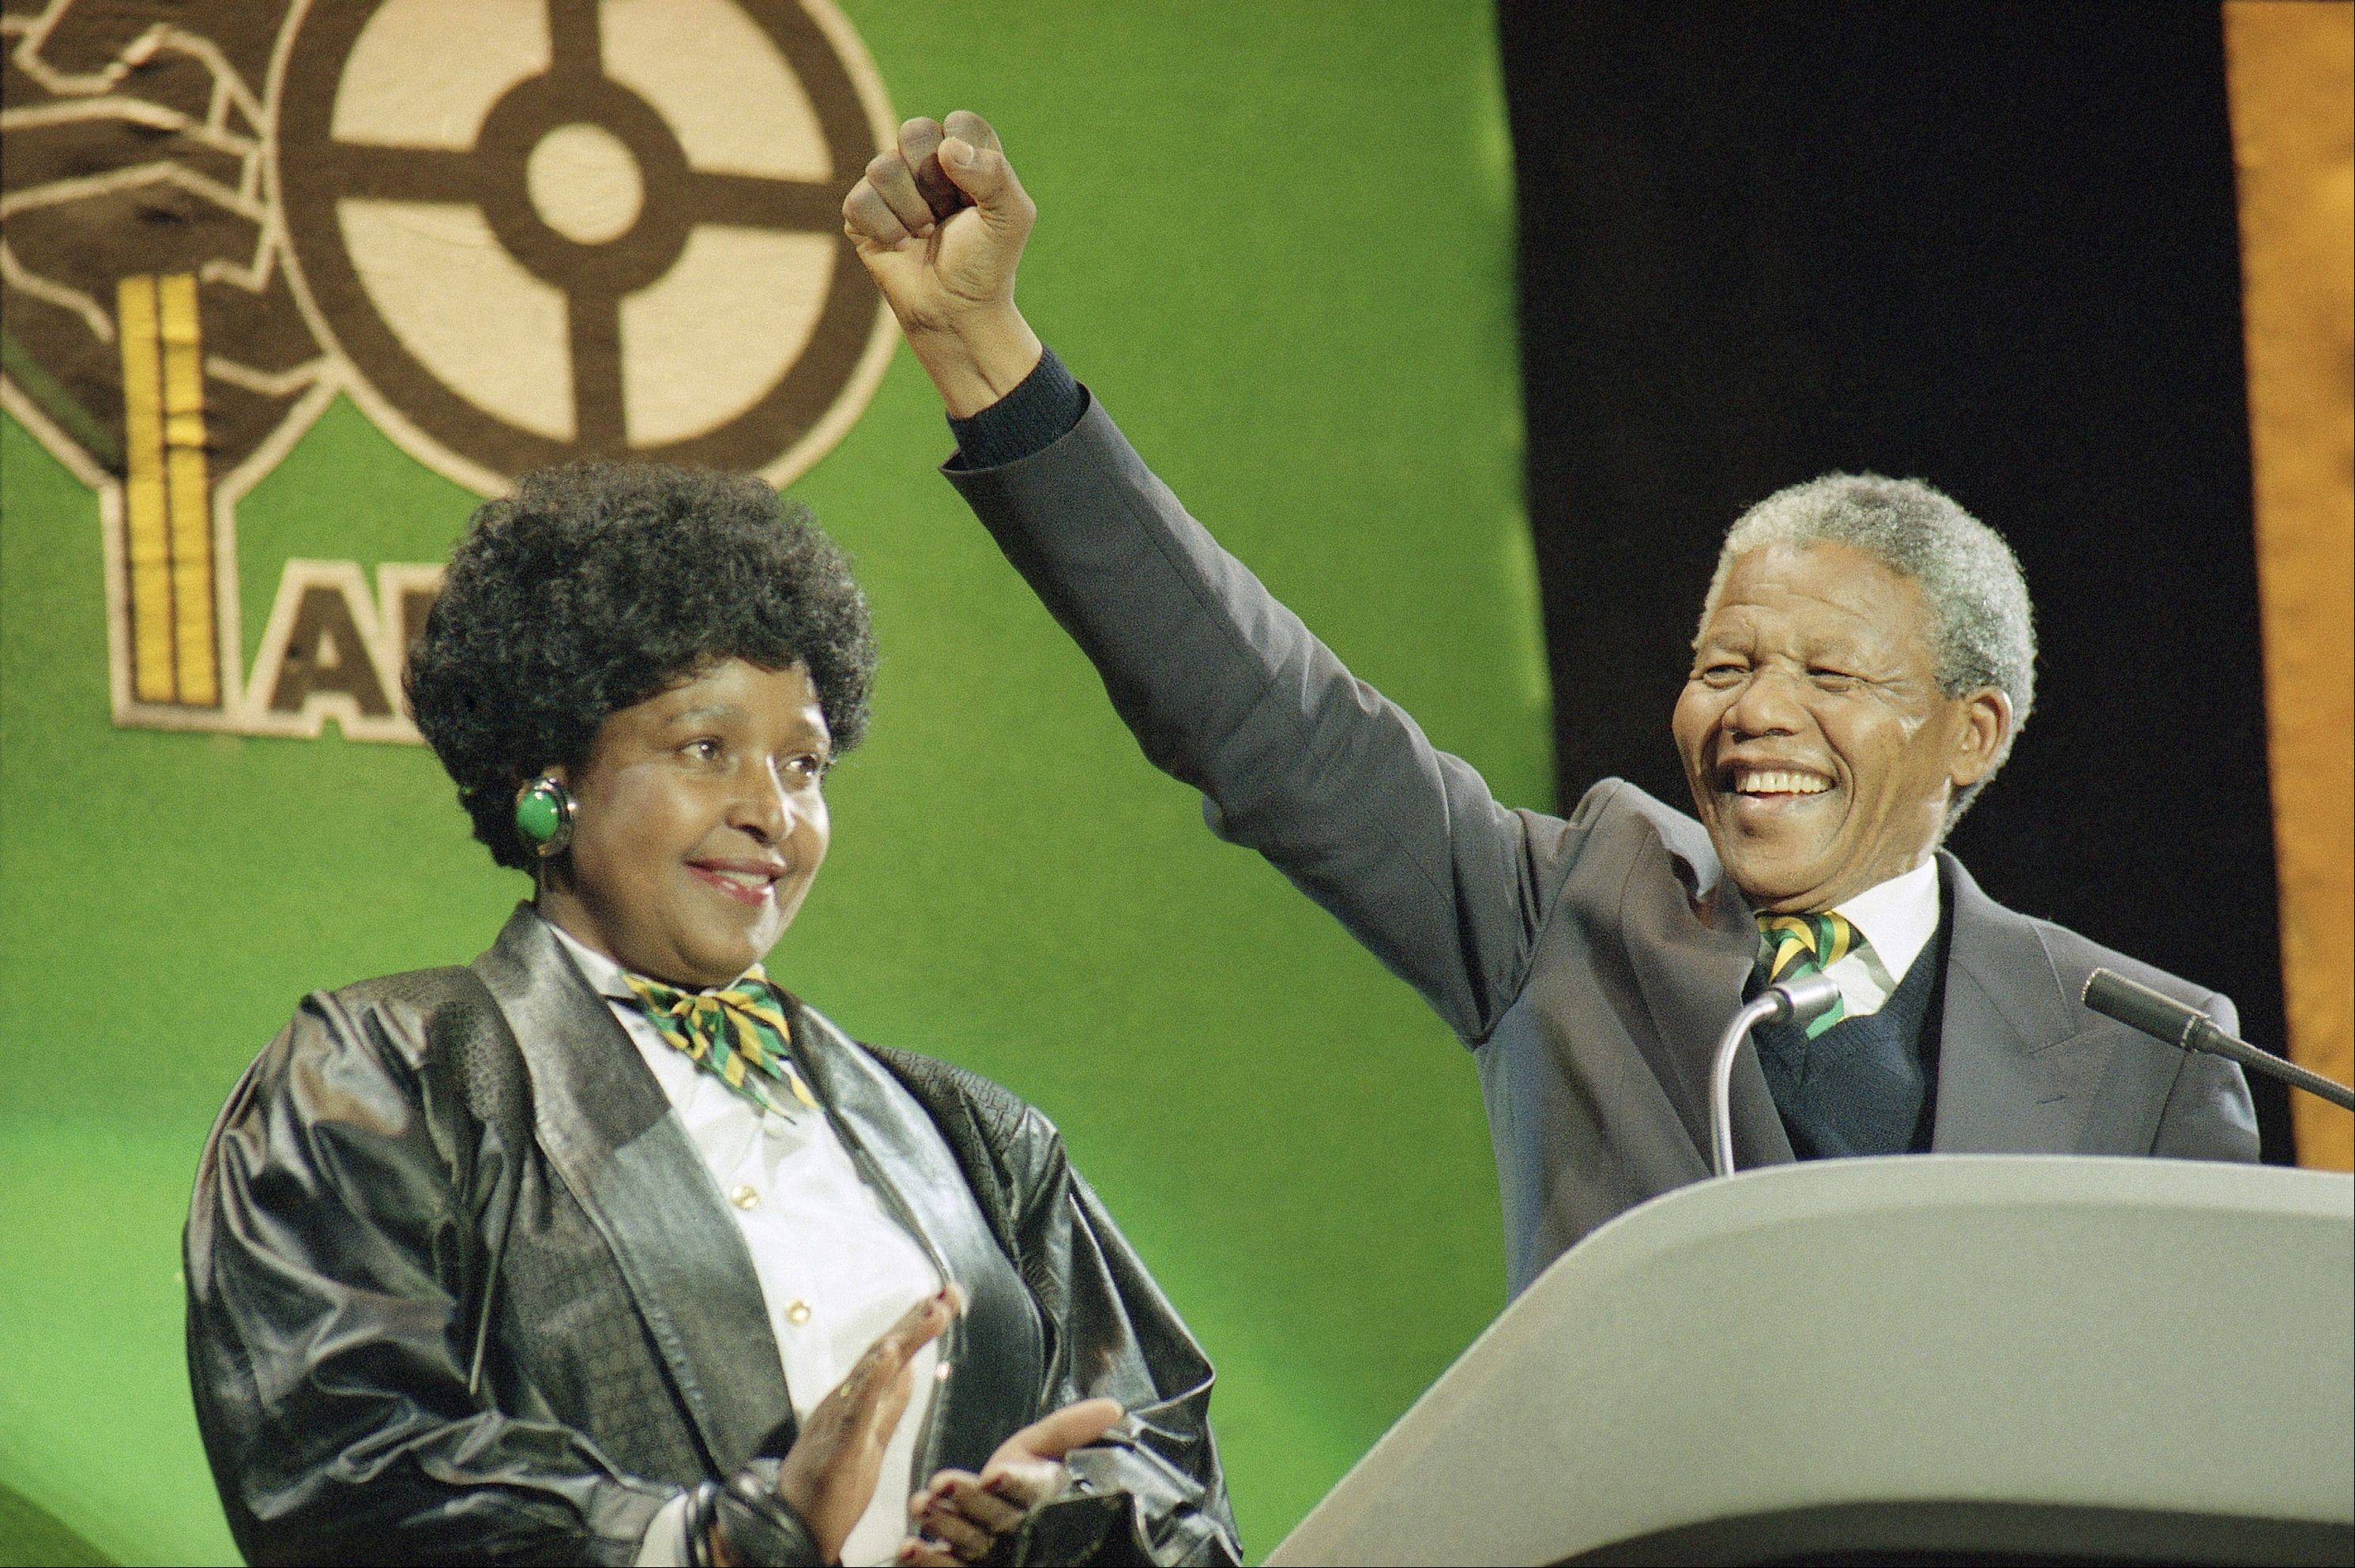 South African anti-apartheid leader Nelson Mandela with his wife Winnie at his side, raises his fist as he acknowledges the cheers of thousands at a rock concert Monday, April 16, 1990 at London's Wembley Stadium.